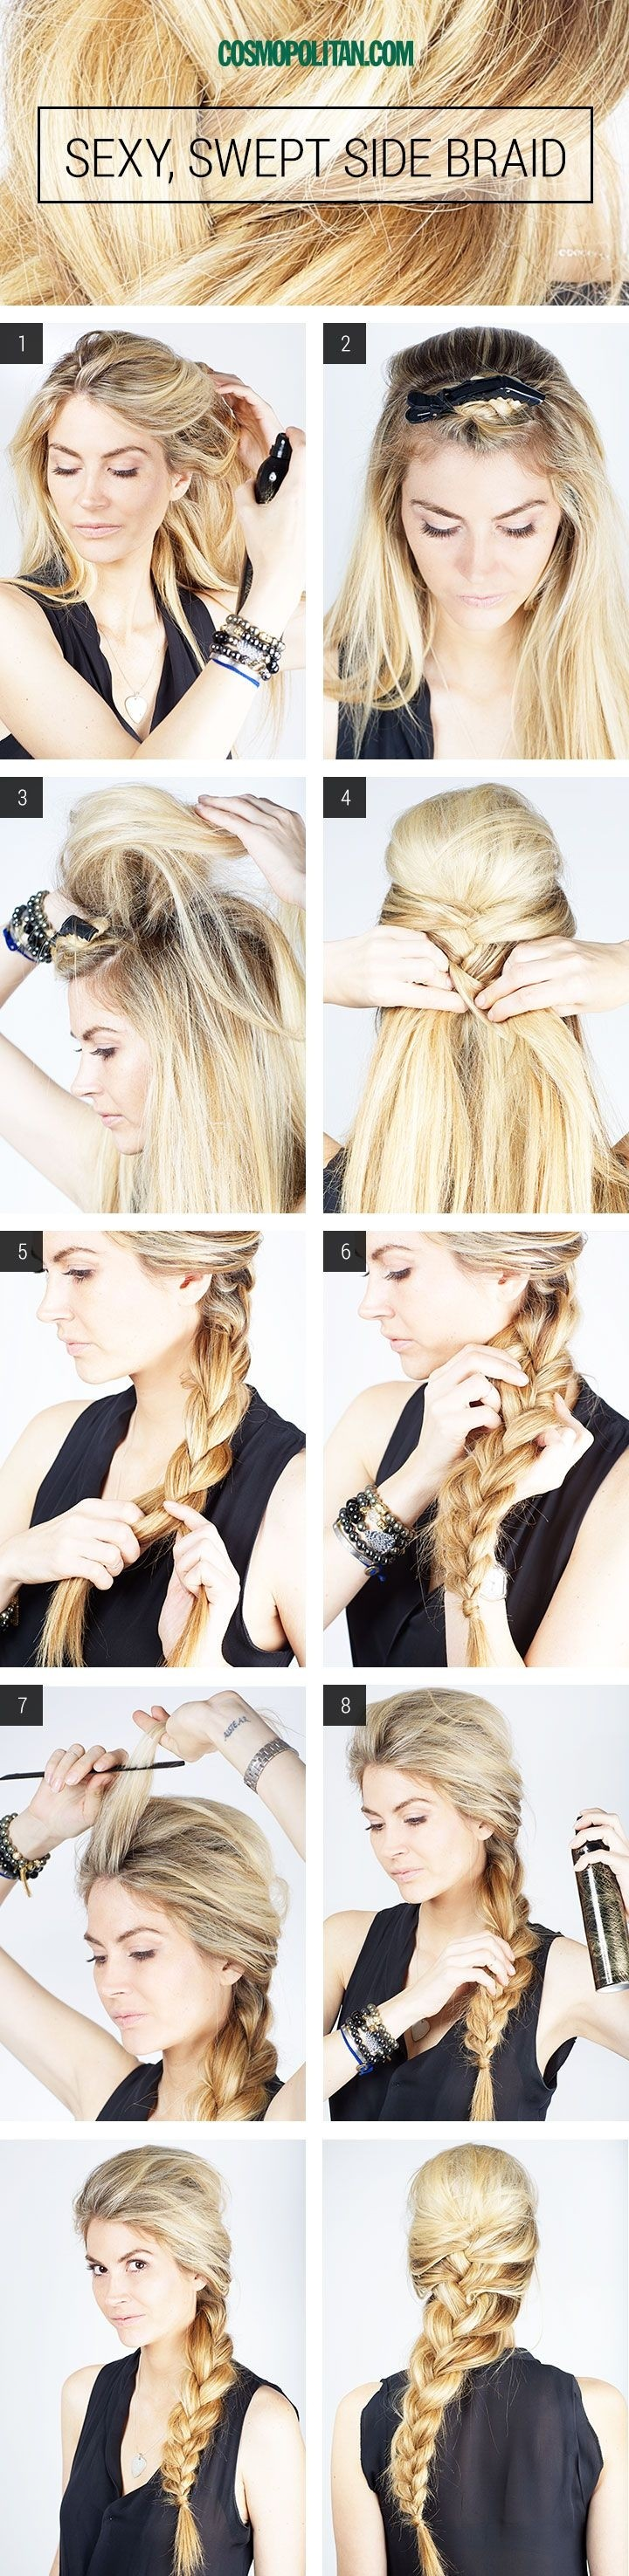 Sexy Swept Side Braided Hairstyle